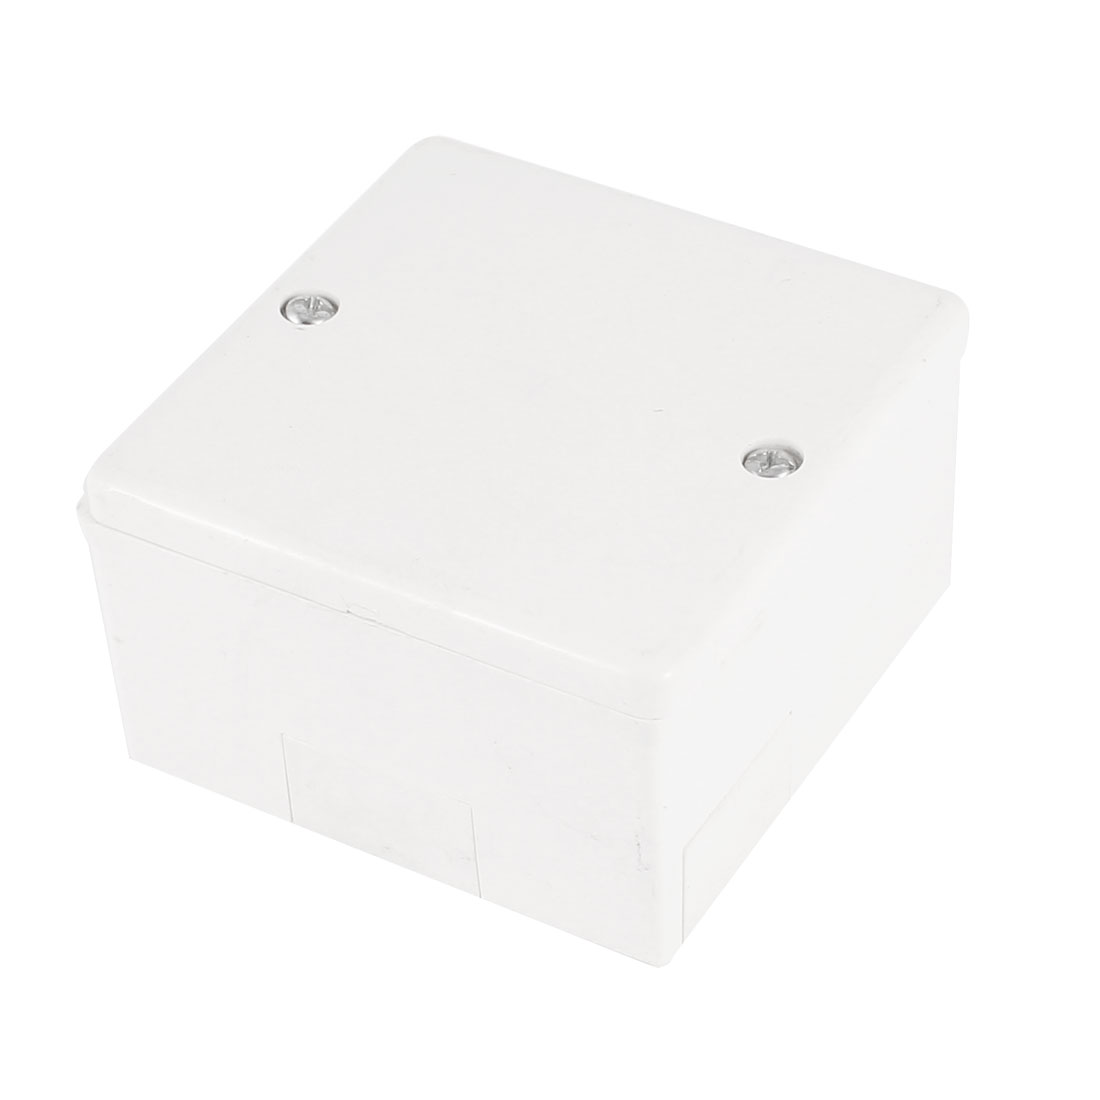 75mm x 75mm x 44mm Surface Mounted Square White PVC Enclosure Case DIY Junction Box